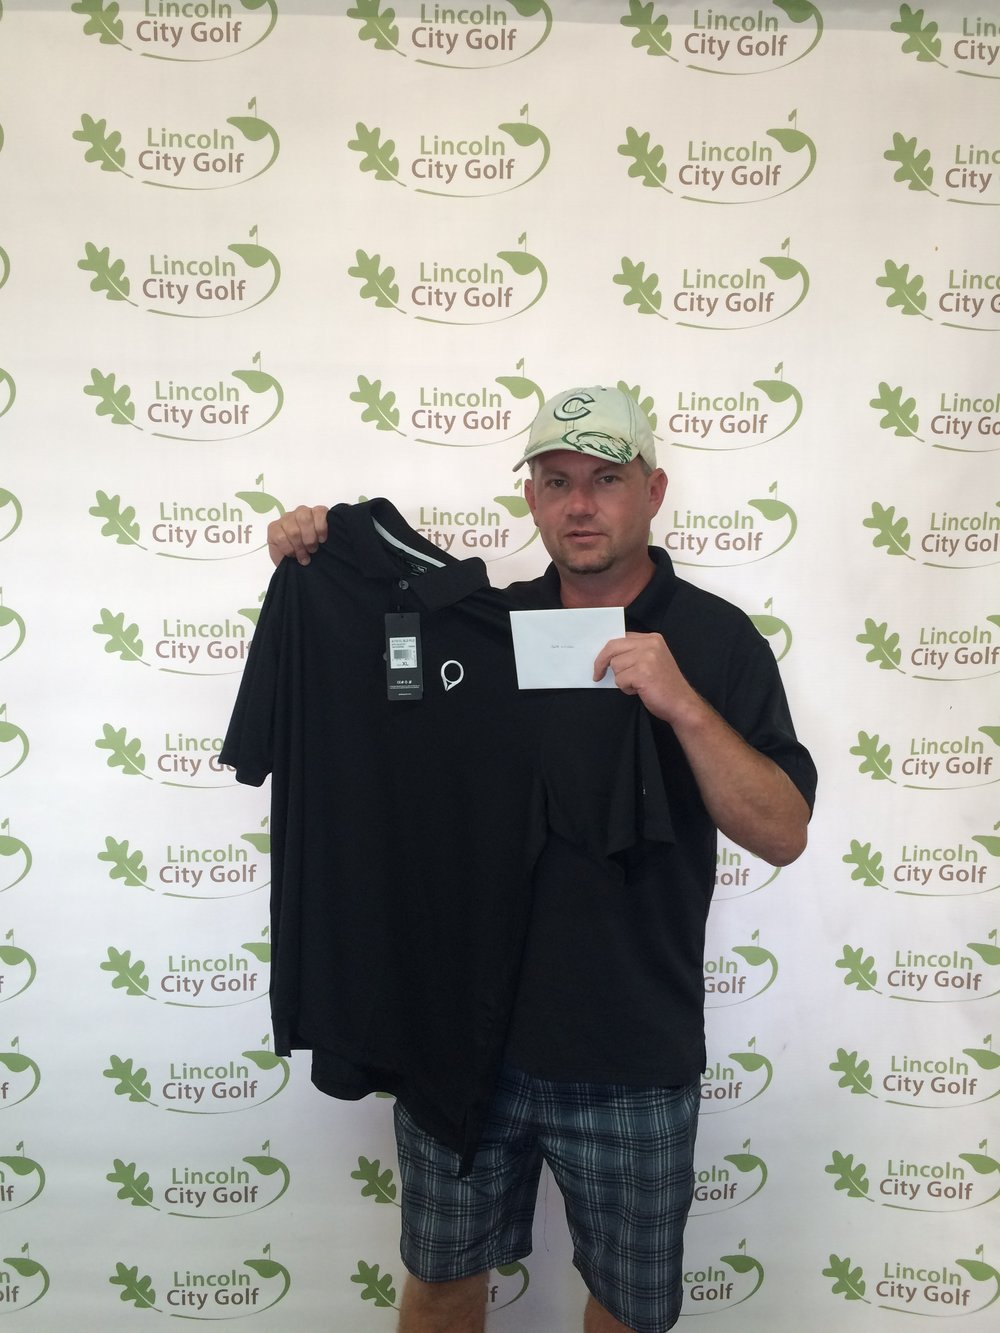 Jeff Wiese - GolfStatus's May Leaderboard WInner and LNK City Golf's July 4some Sweepstakes Winner.JPG